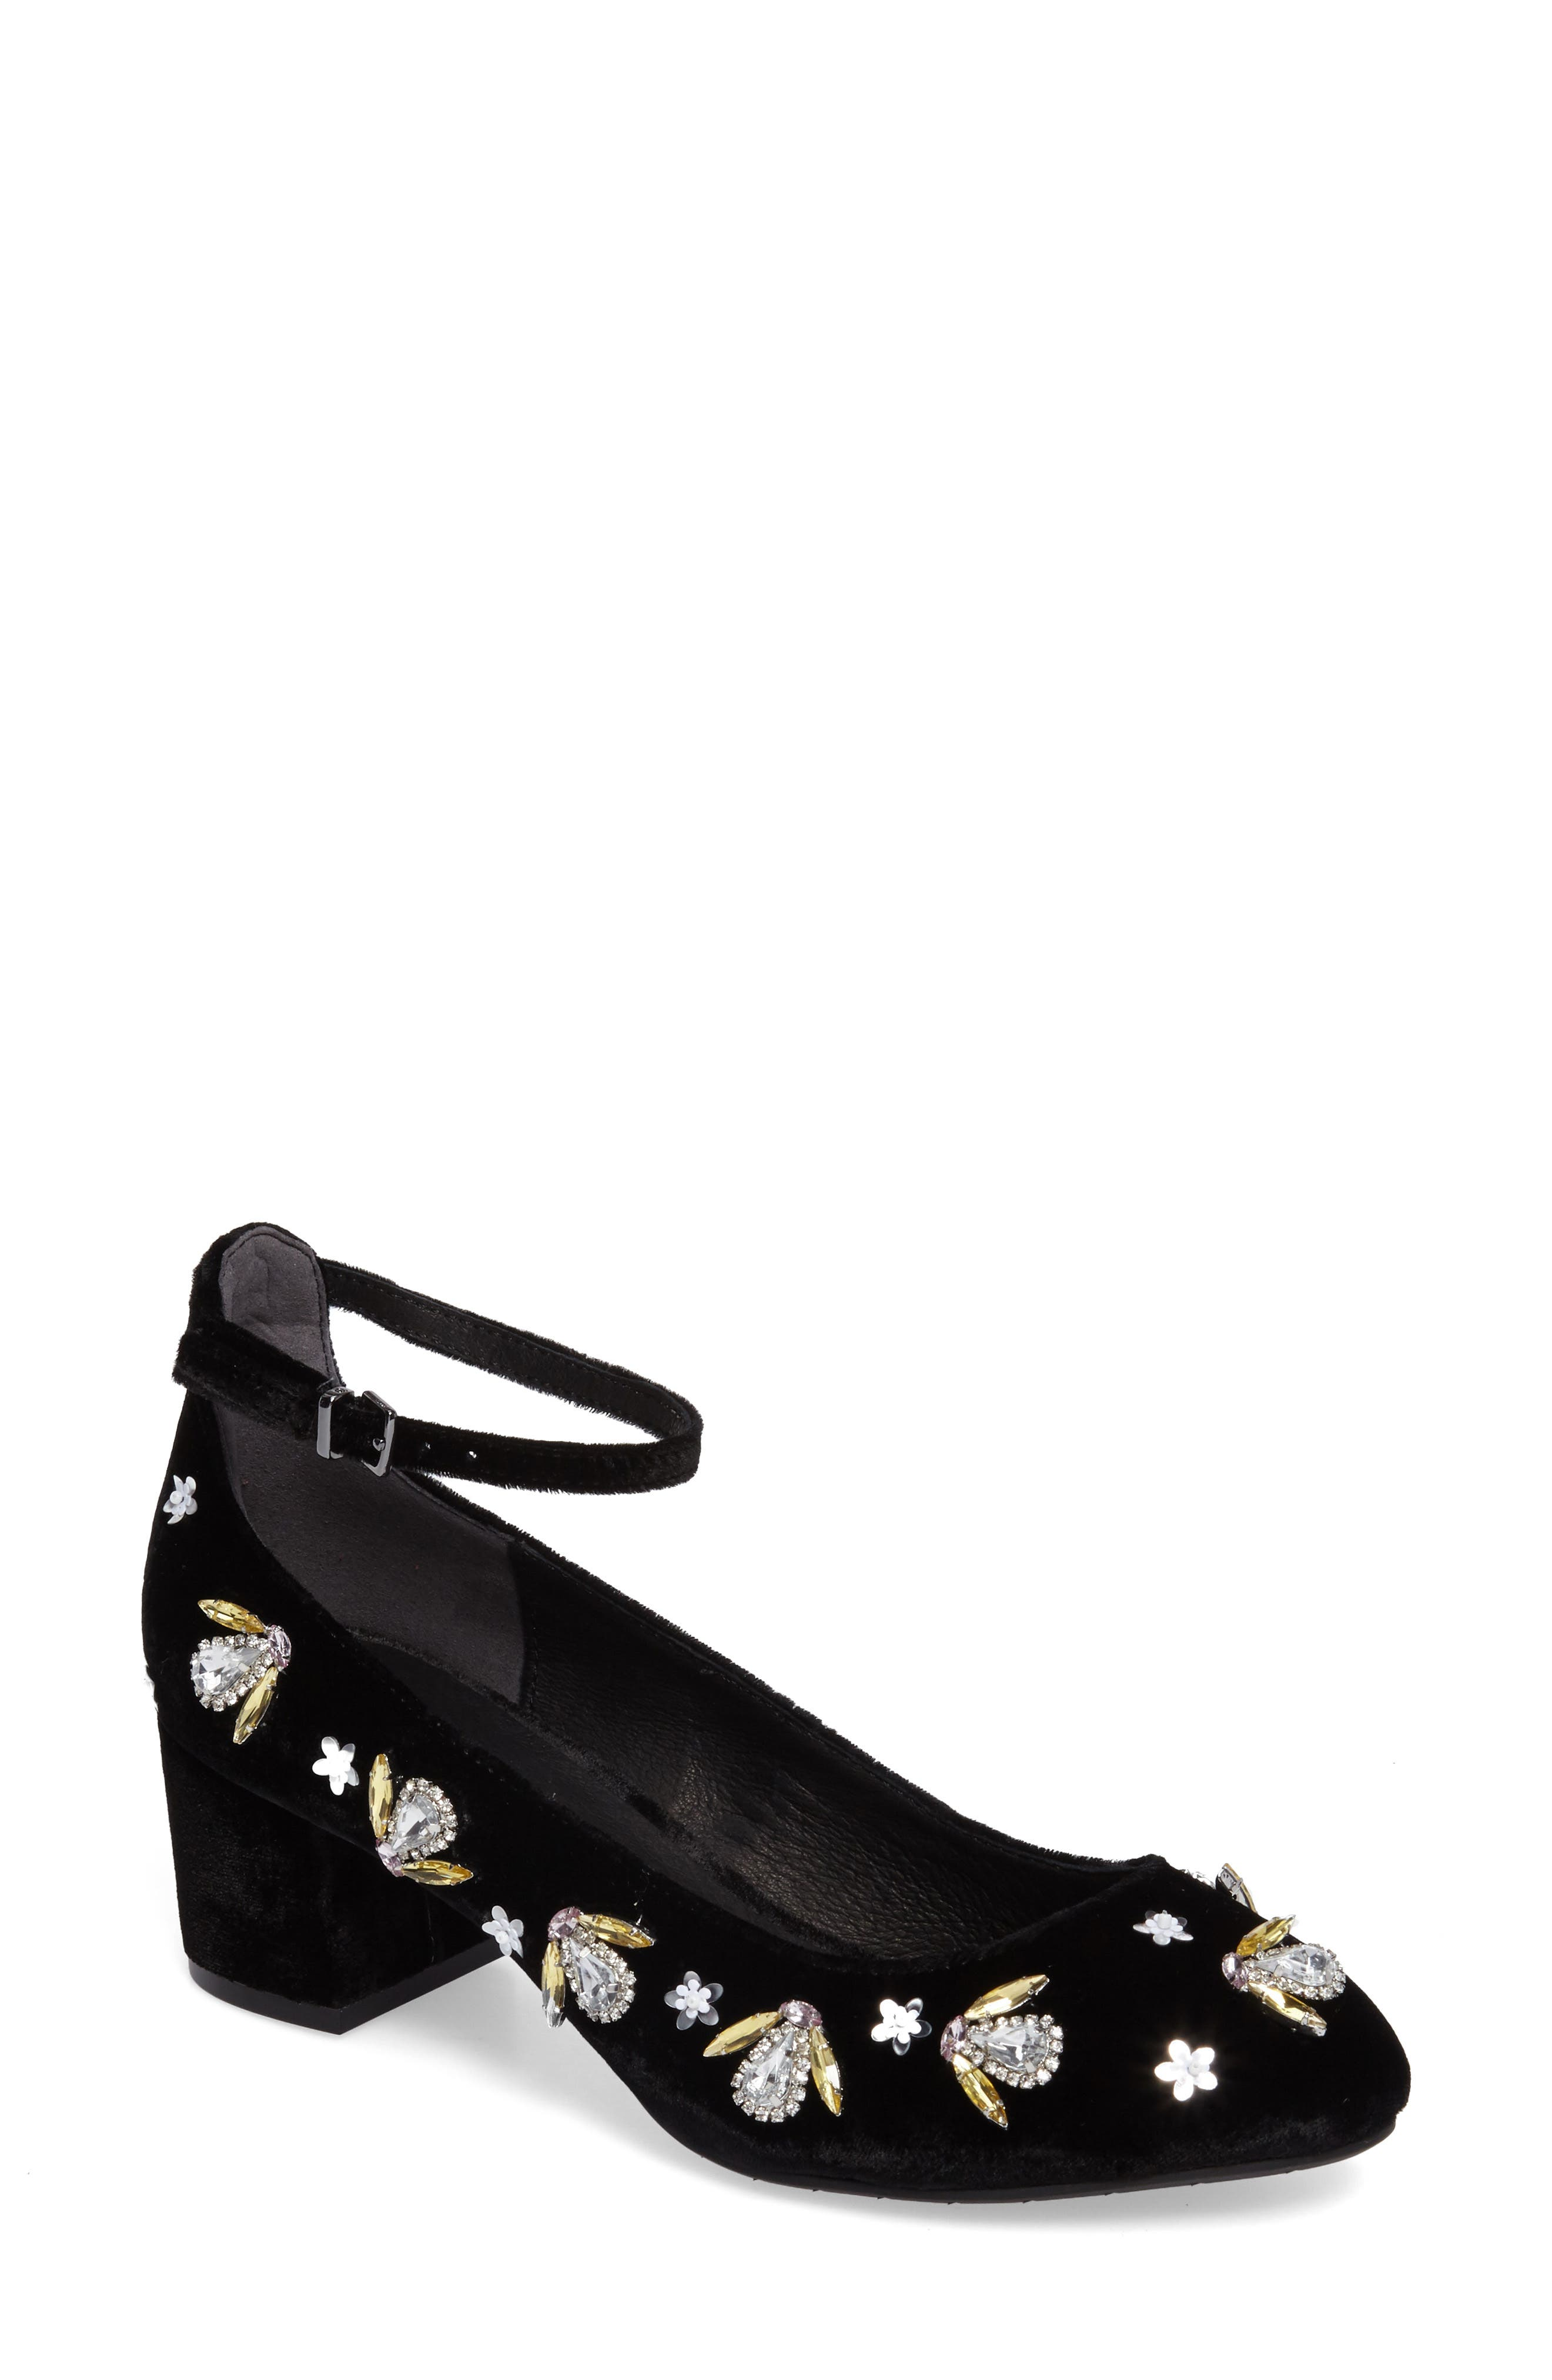 Alternate Image 1 Selected - Kenneth Cole New York Thalia 3 Bee Embellished Pump (Women)